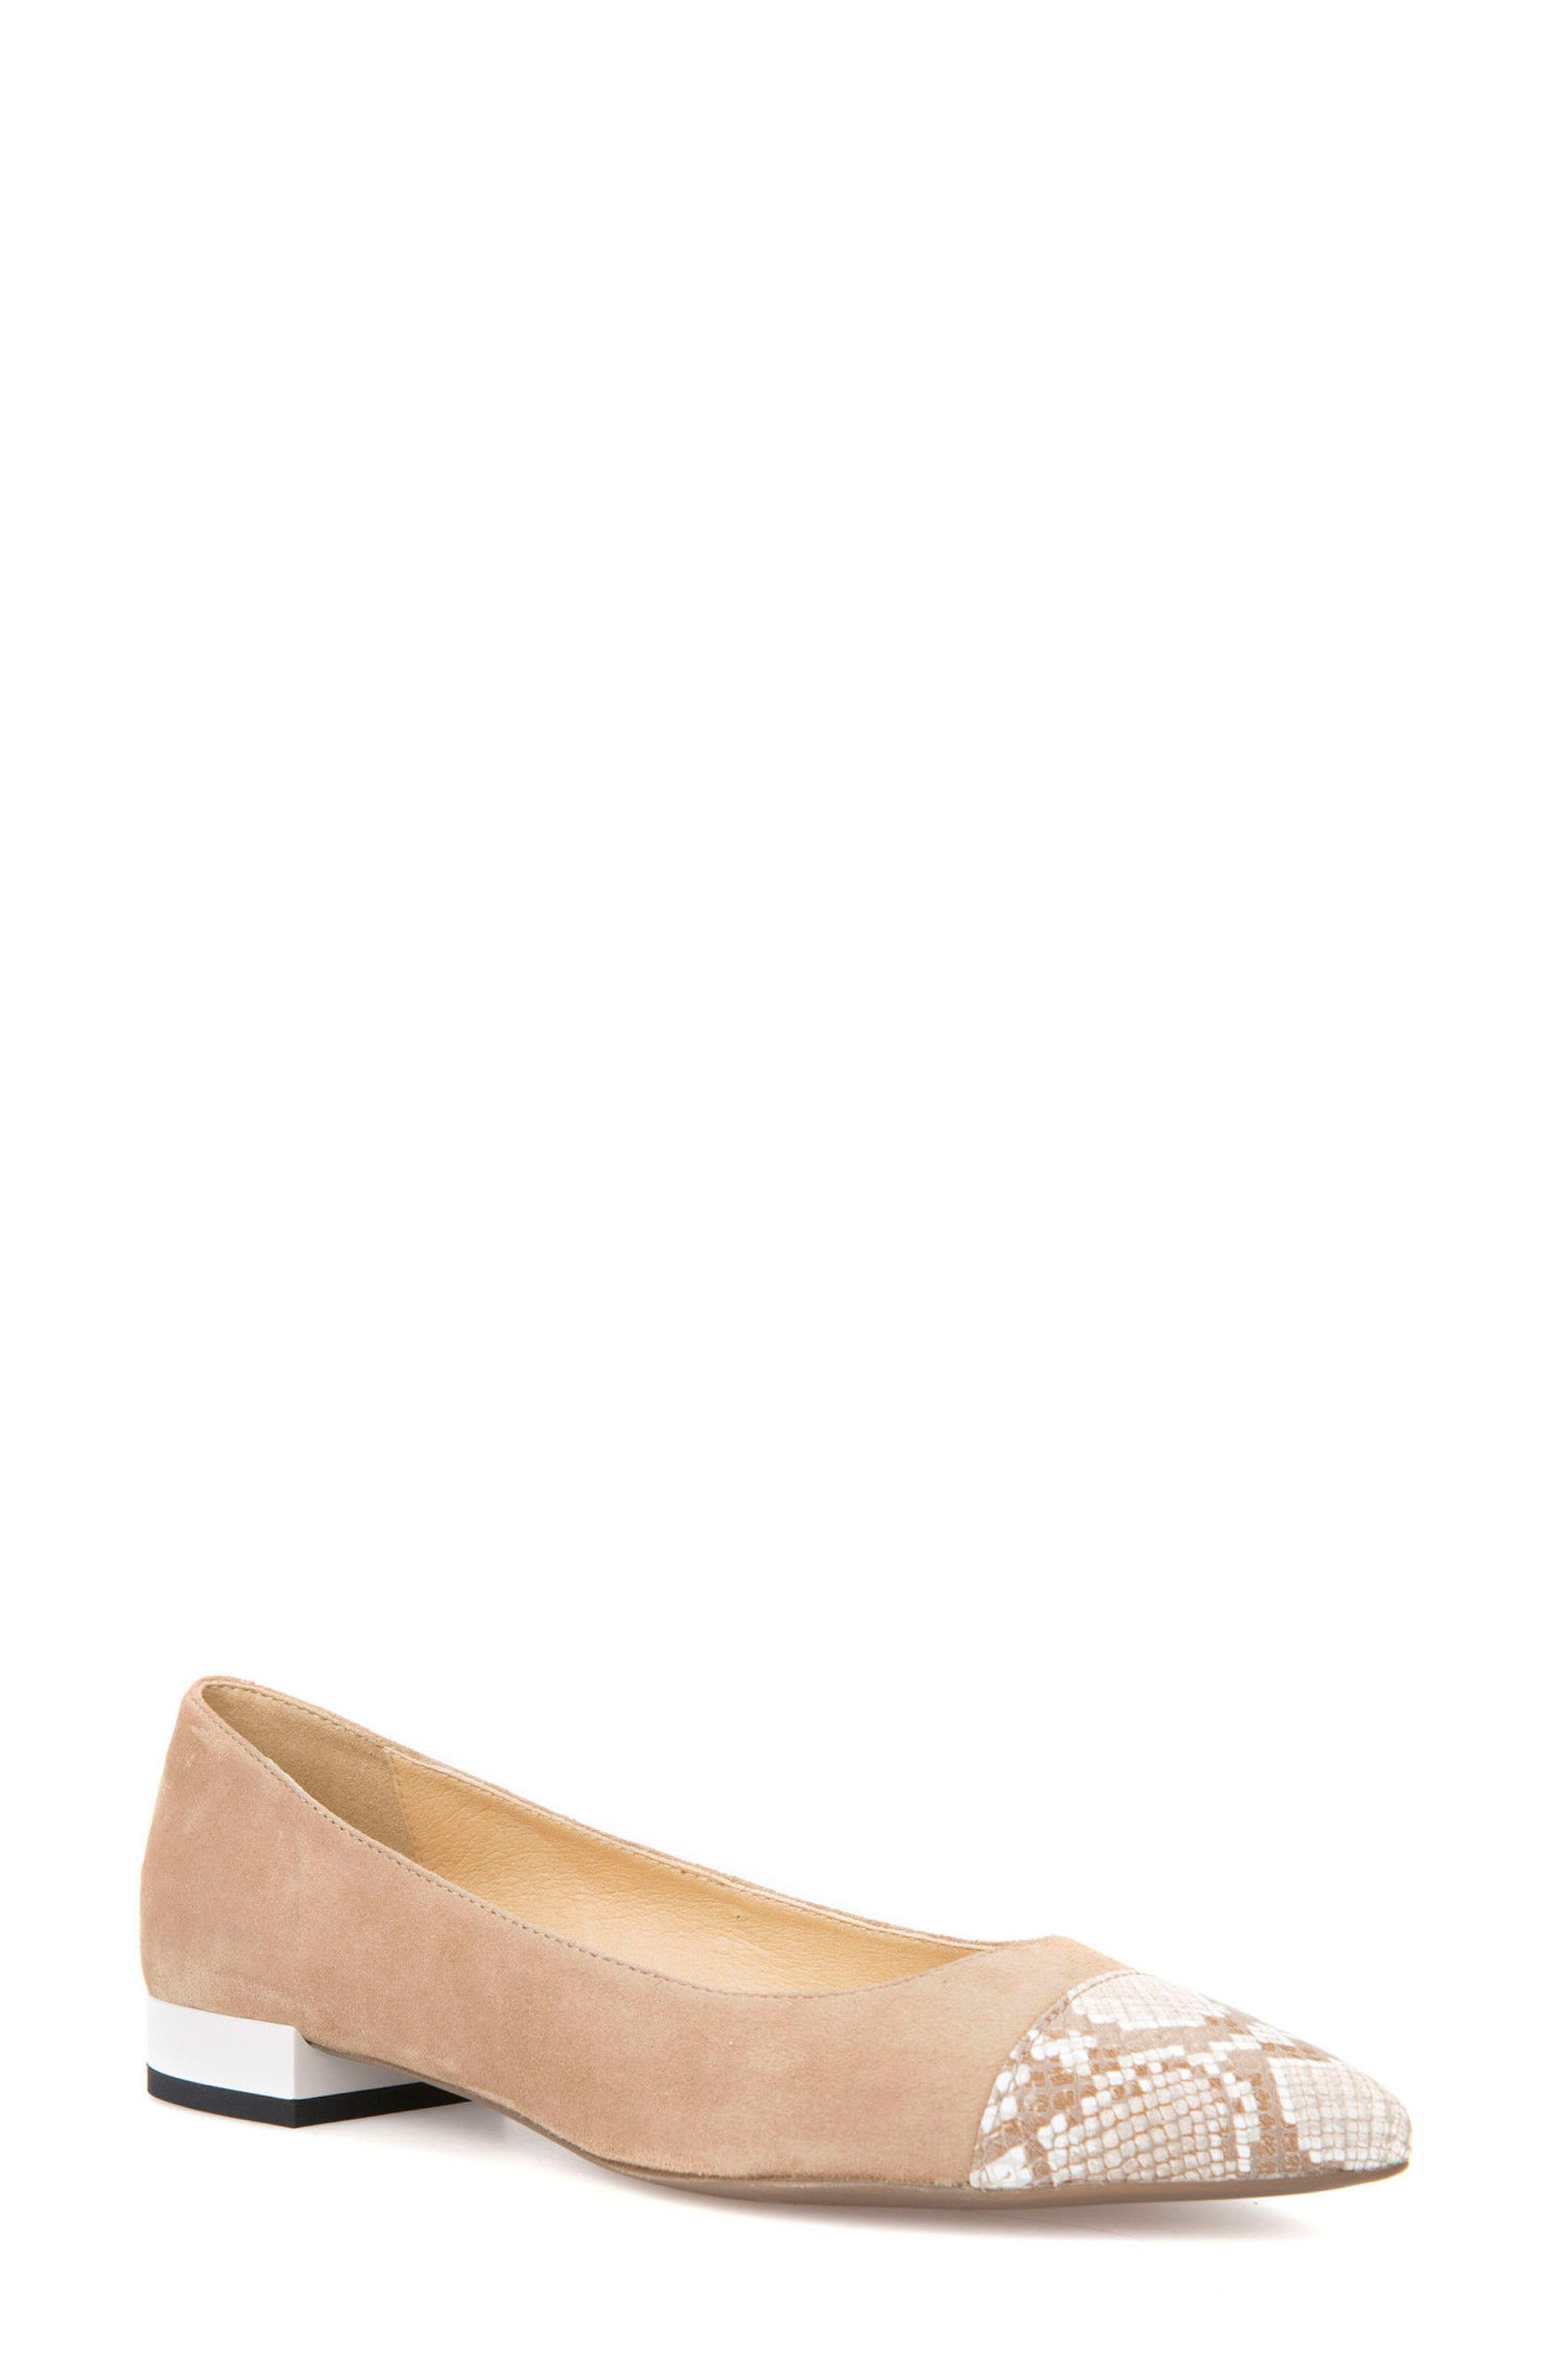 Charyssa Flat,                             Main thumbnail 1, color,                             BEIGE LEATHER